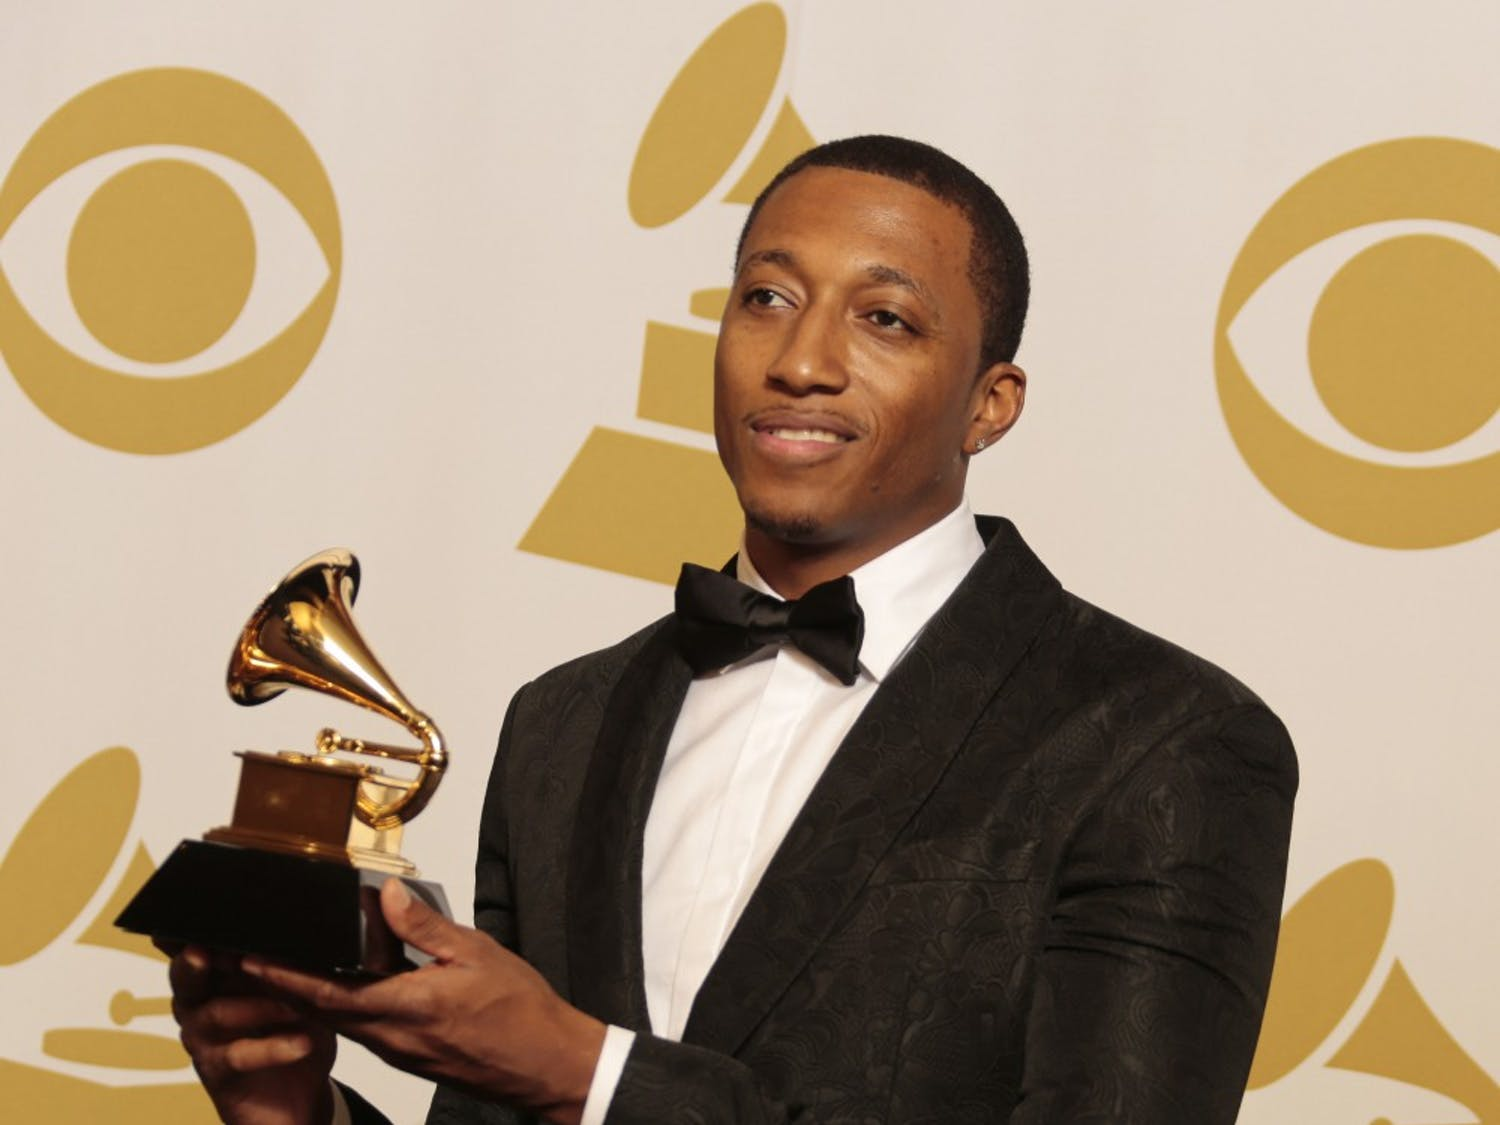 Lecrae backstage at the 57th Annual Grammy Awards at Staples Center in Los Angeles on Sunday, Feb. 8, 2015. (Lawrence K. Ho/Los Angeles Times/TNS)